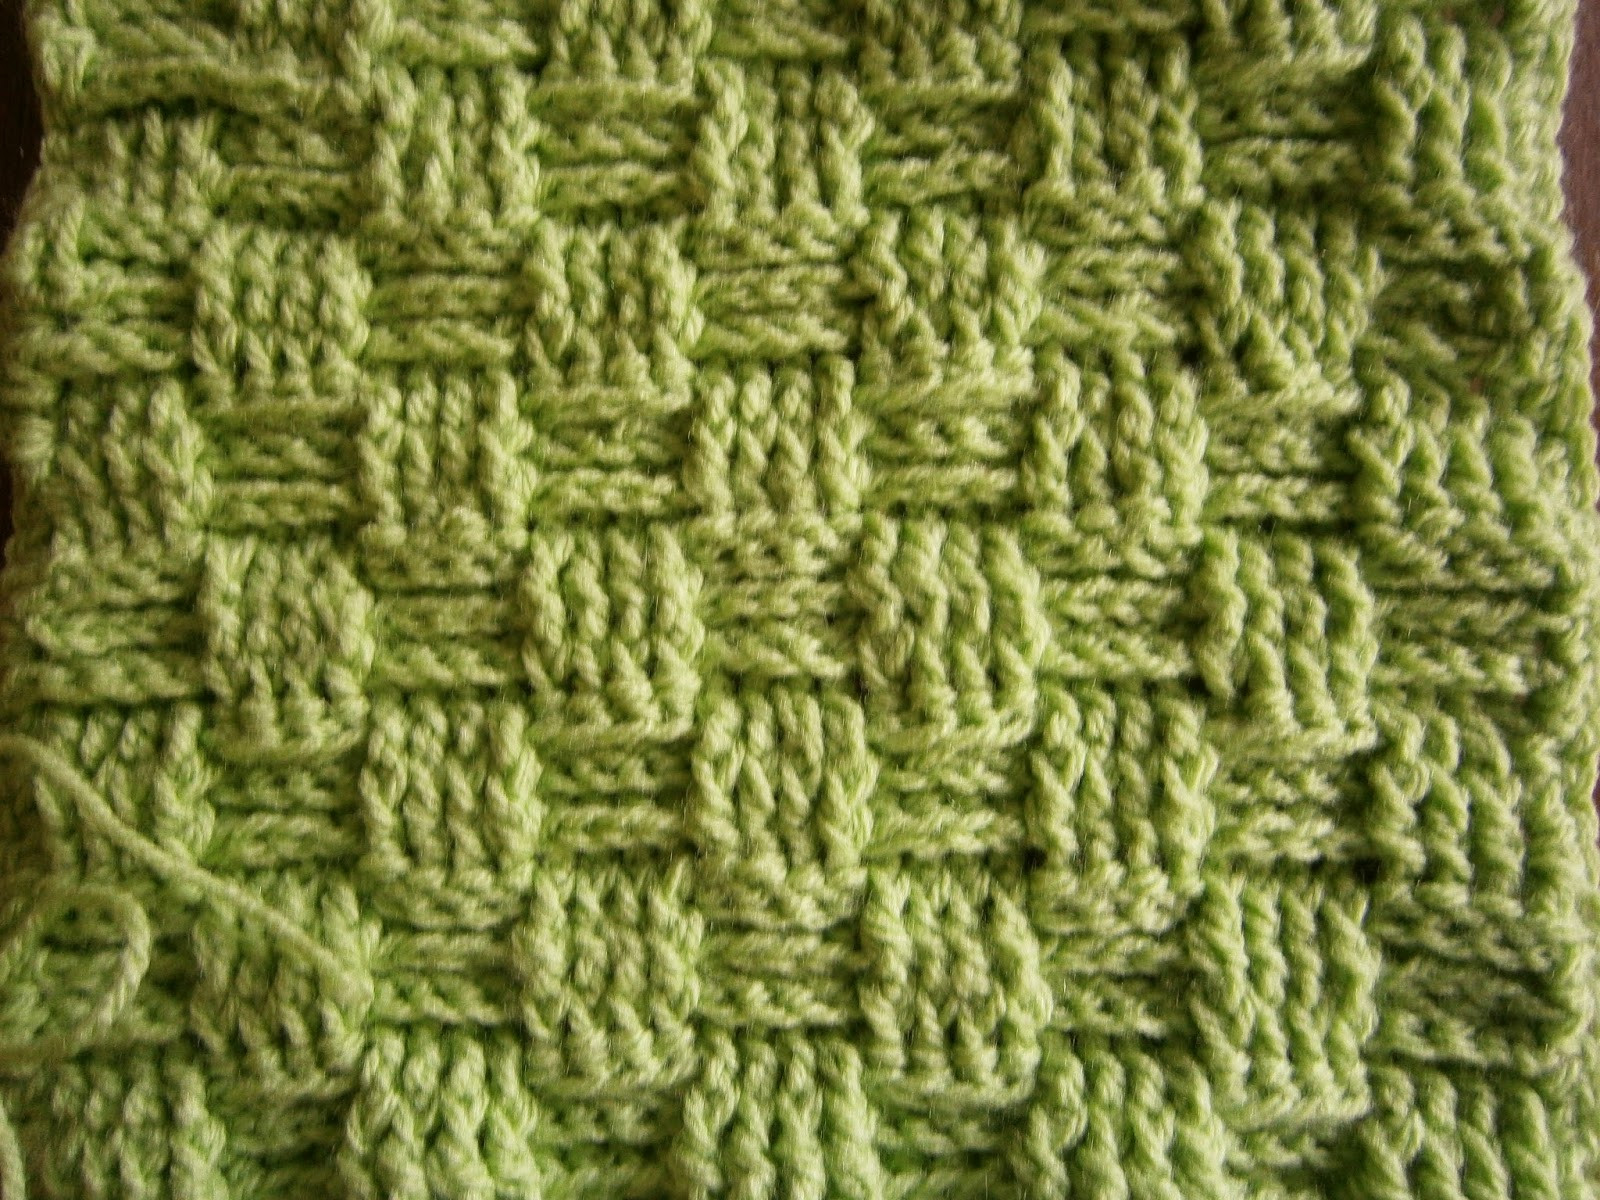 New Claire S Crafts Basket Weave Stitch Weaving Stitches Of Wonderful 42 Images Weaving Stitches